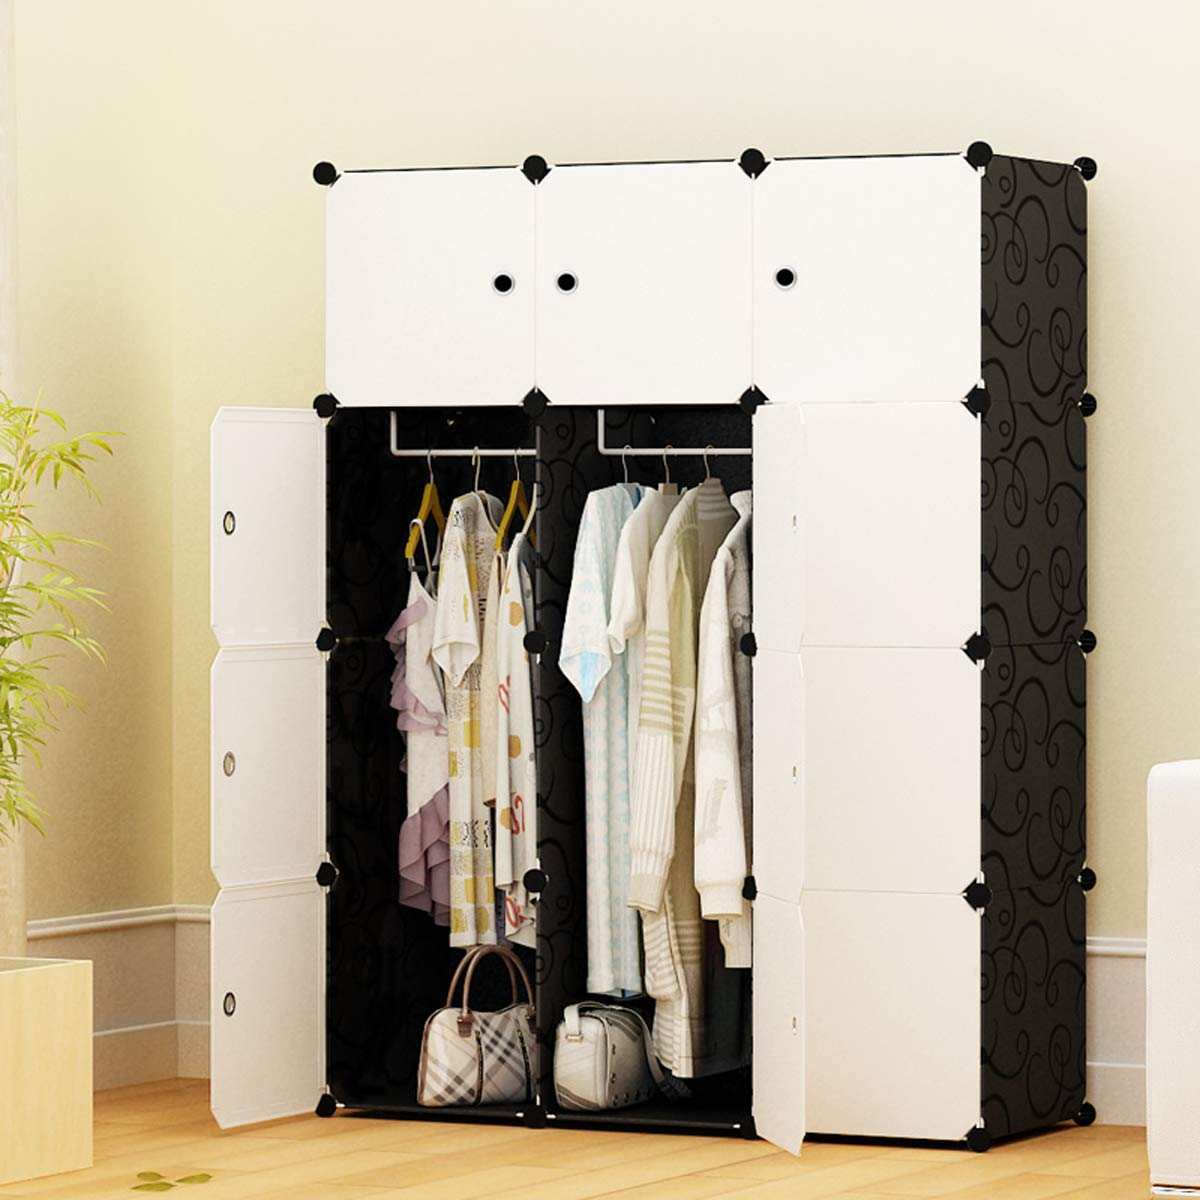 COLESHOME Portable Wardrobe Storage Organizer Cube Armoire Modular Cabinet for Space Saving for Bed Room Living Room(6 Cube 2 Hanger, Black) by COLESHOME